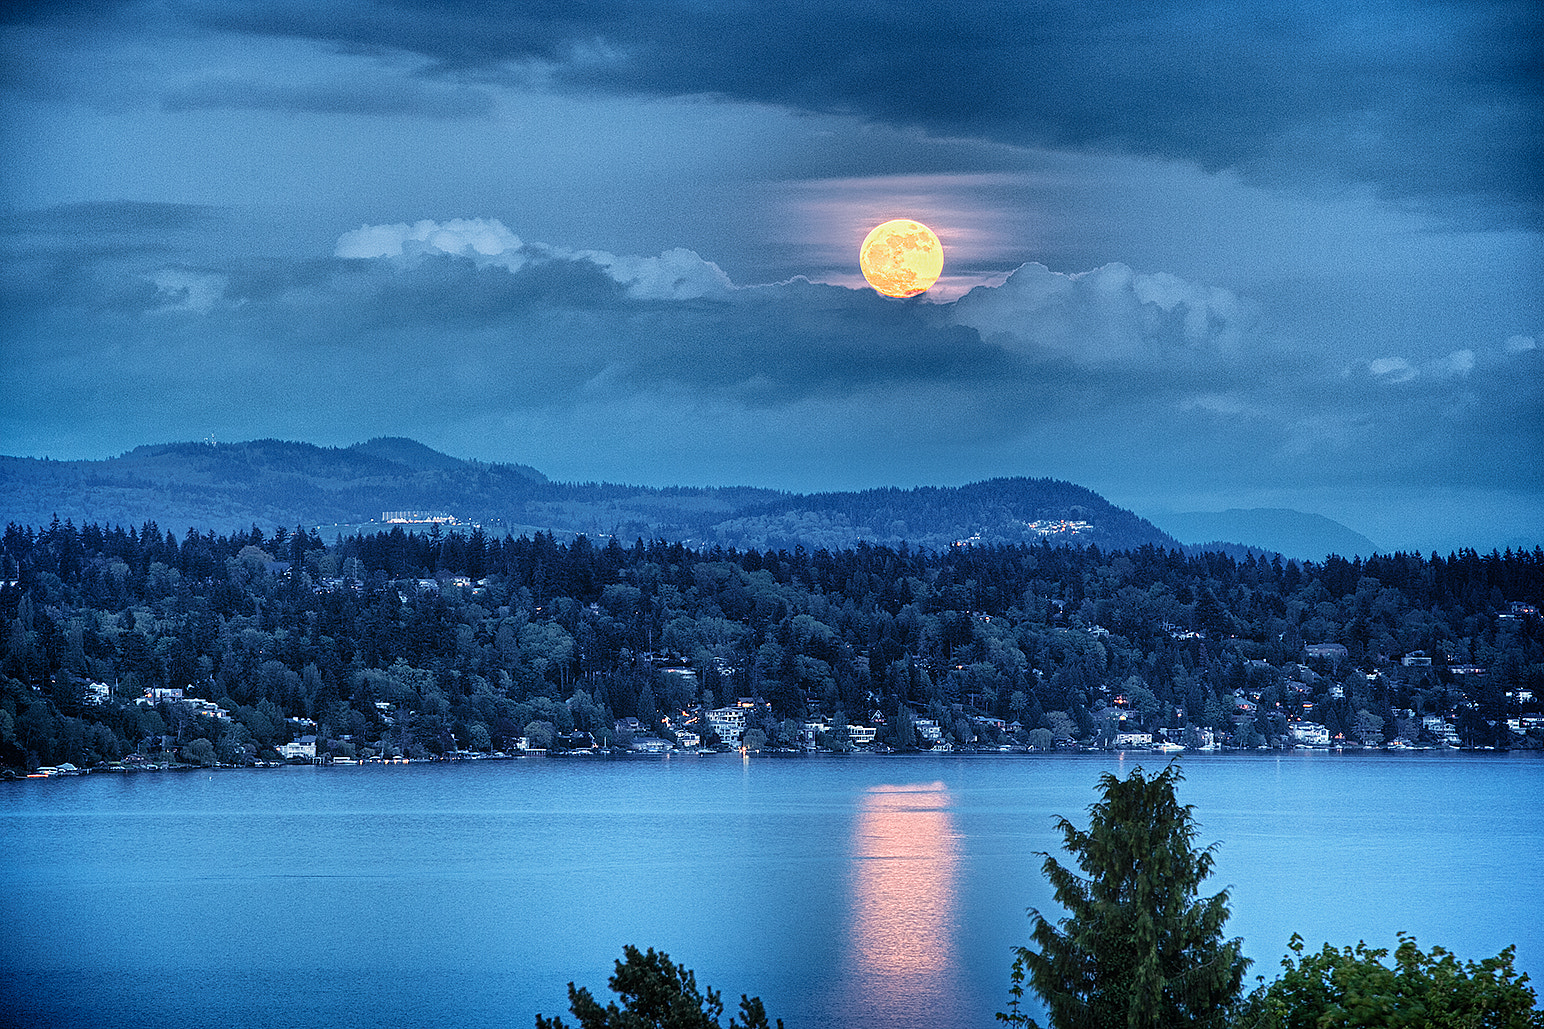 Photograph Super Moon Breaks the Cloud Cover by Jack Markle on 500px